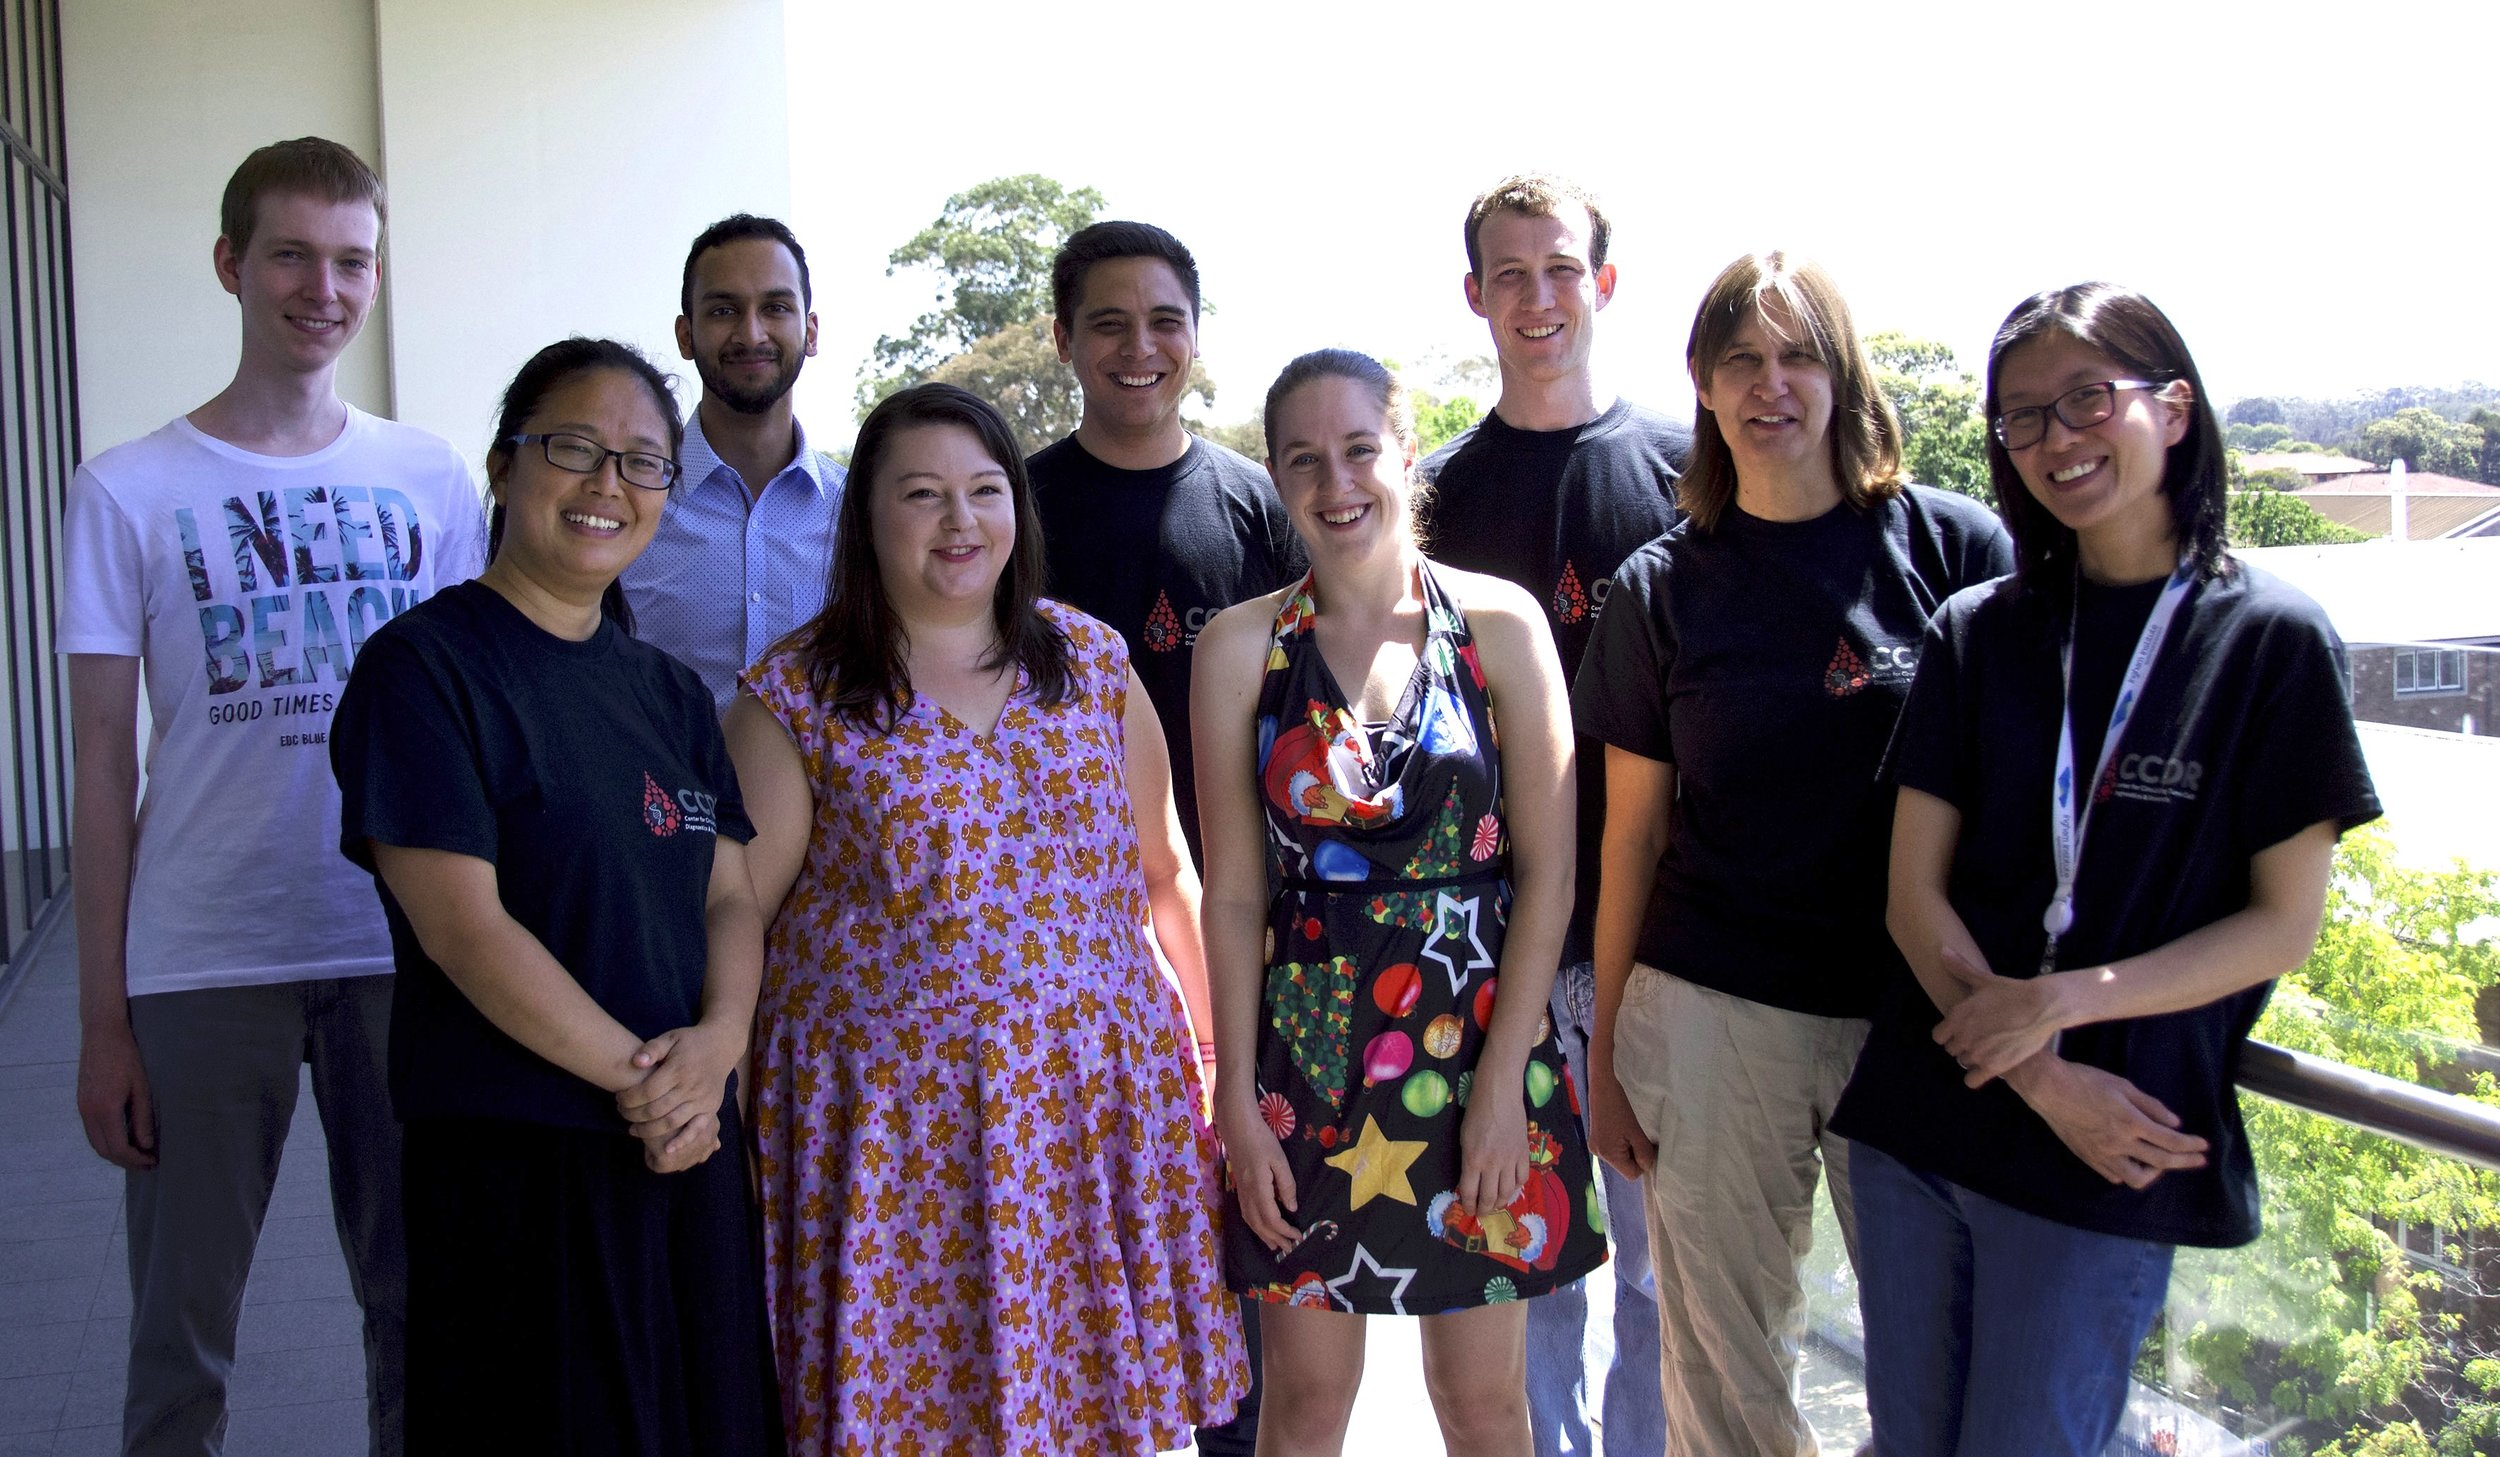 Whole CTC research team working with Therese Becker (as Dec 2017):   Top(left to right): Andre Franken, Vinay Murthy, Joseph Po, David Lynch  Bottom (left to right): Yafeng Ma, Casey Borthwick, Sarah Jeffreys, Therese Becker, Pei Ding